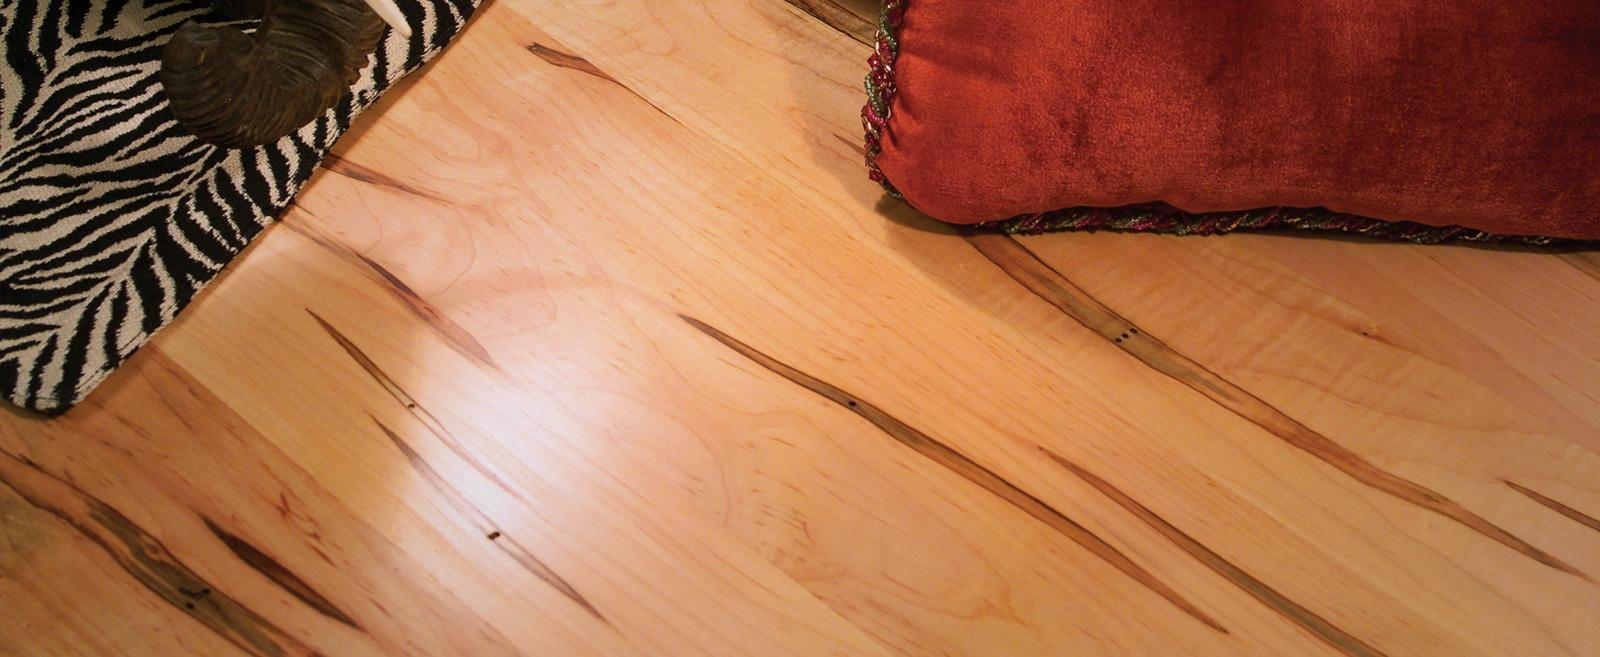 Rehmeyer Flooring makes some exotic looking wood floors - wormy maple